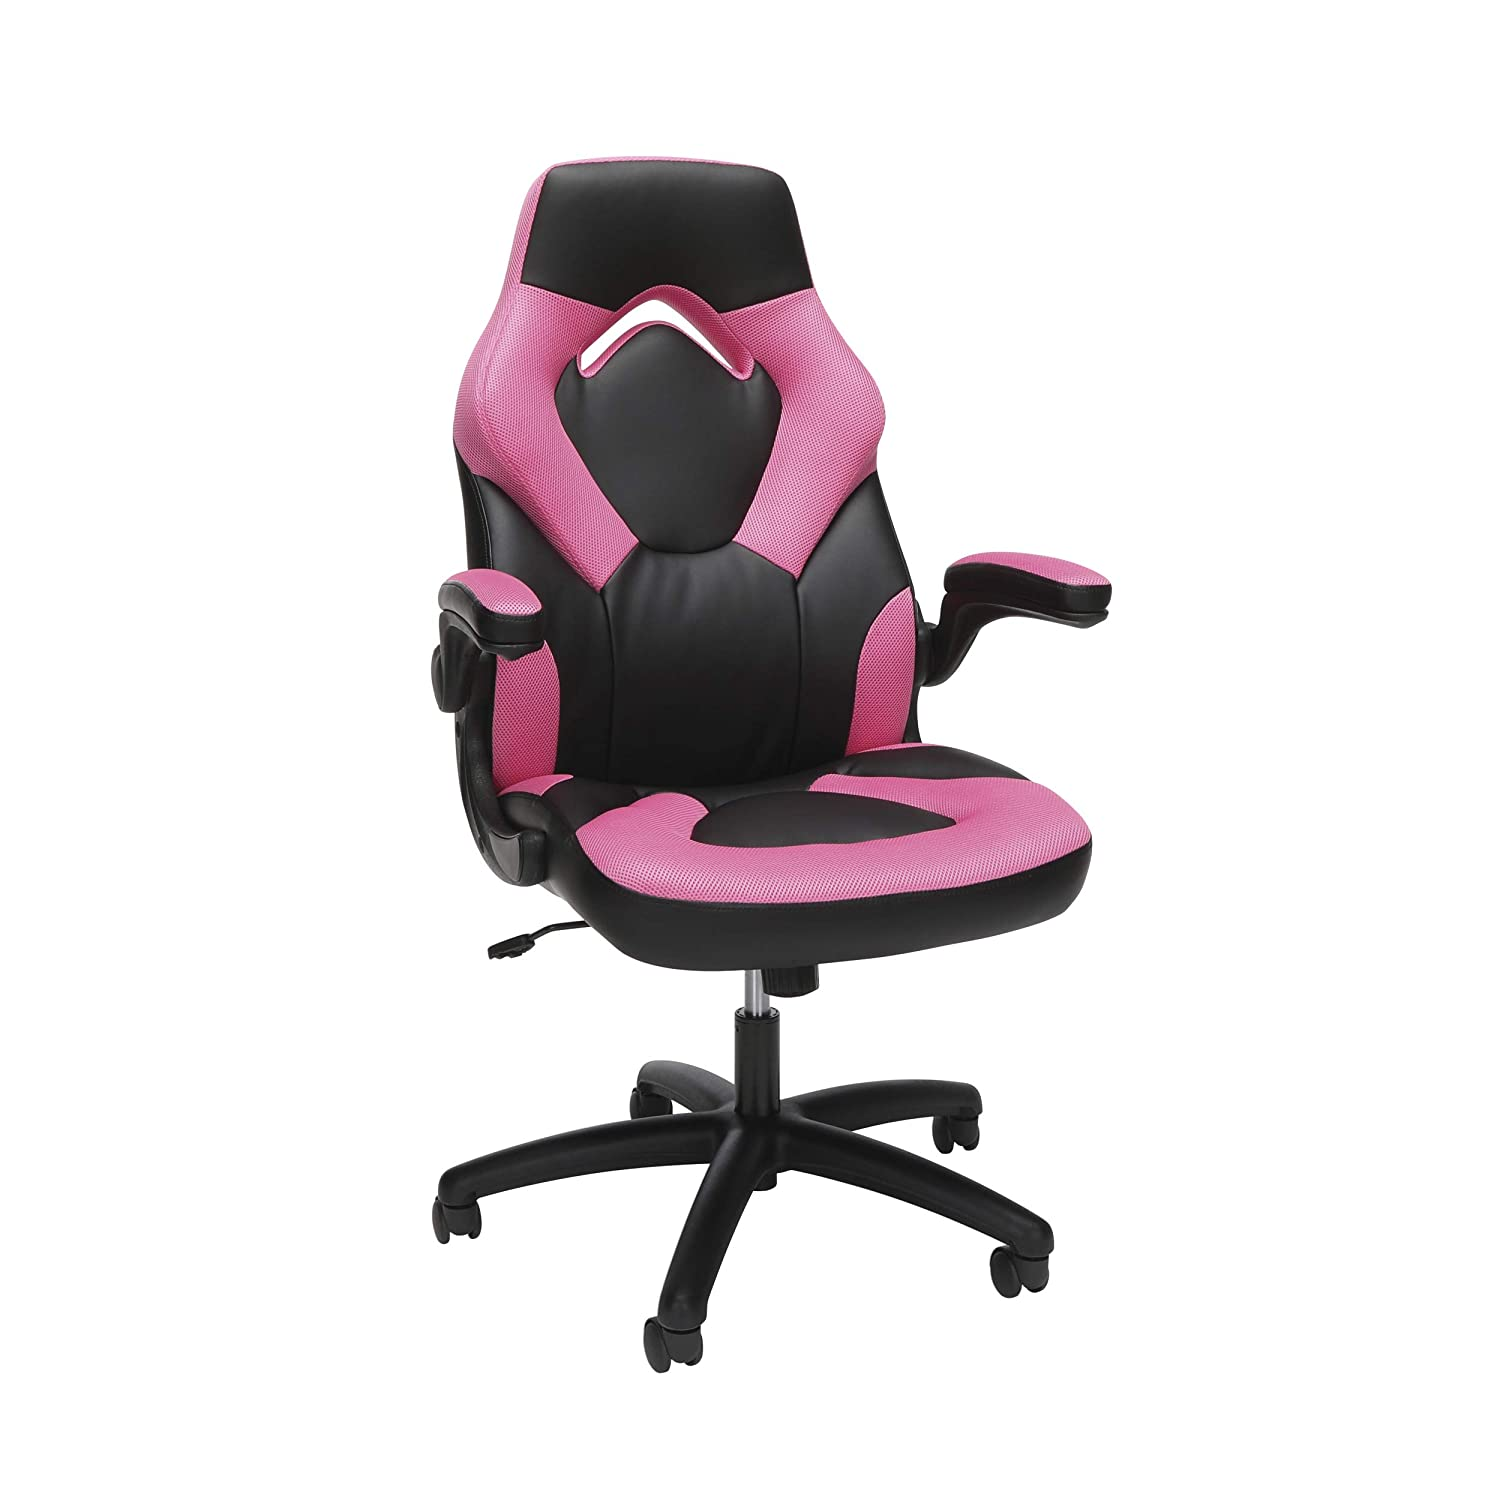 OFM Essentials Collection Racing Style Bonded Leather Gaming Chair, in Pink ESS-3085-PINK